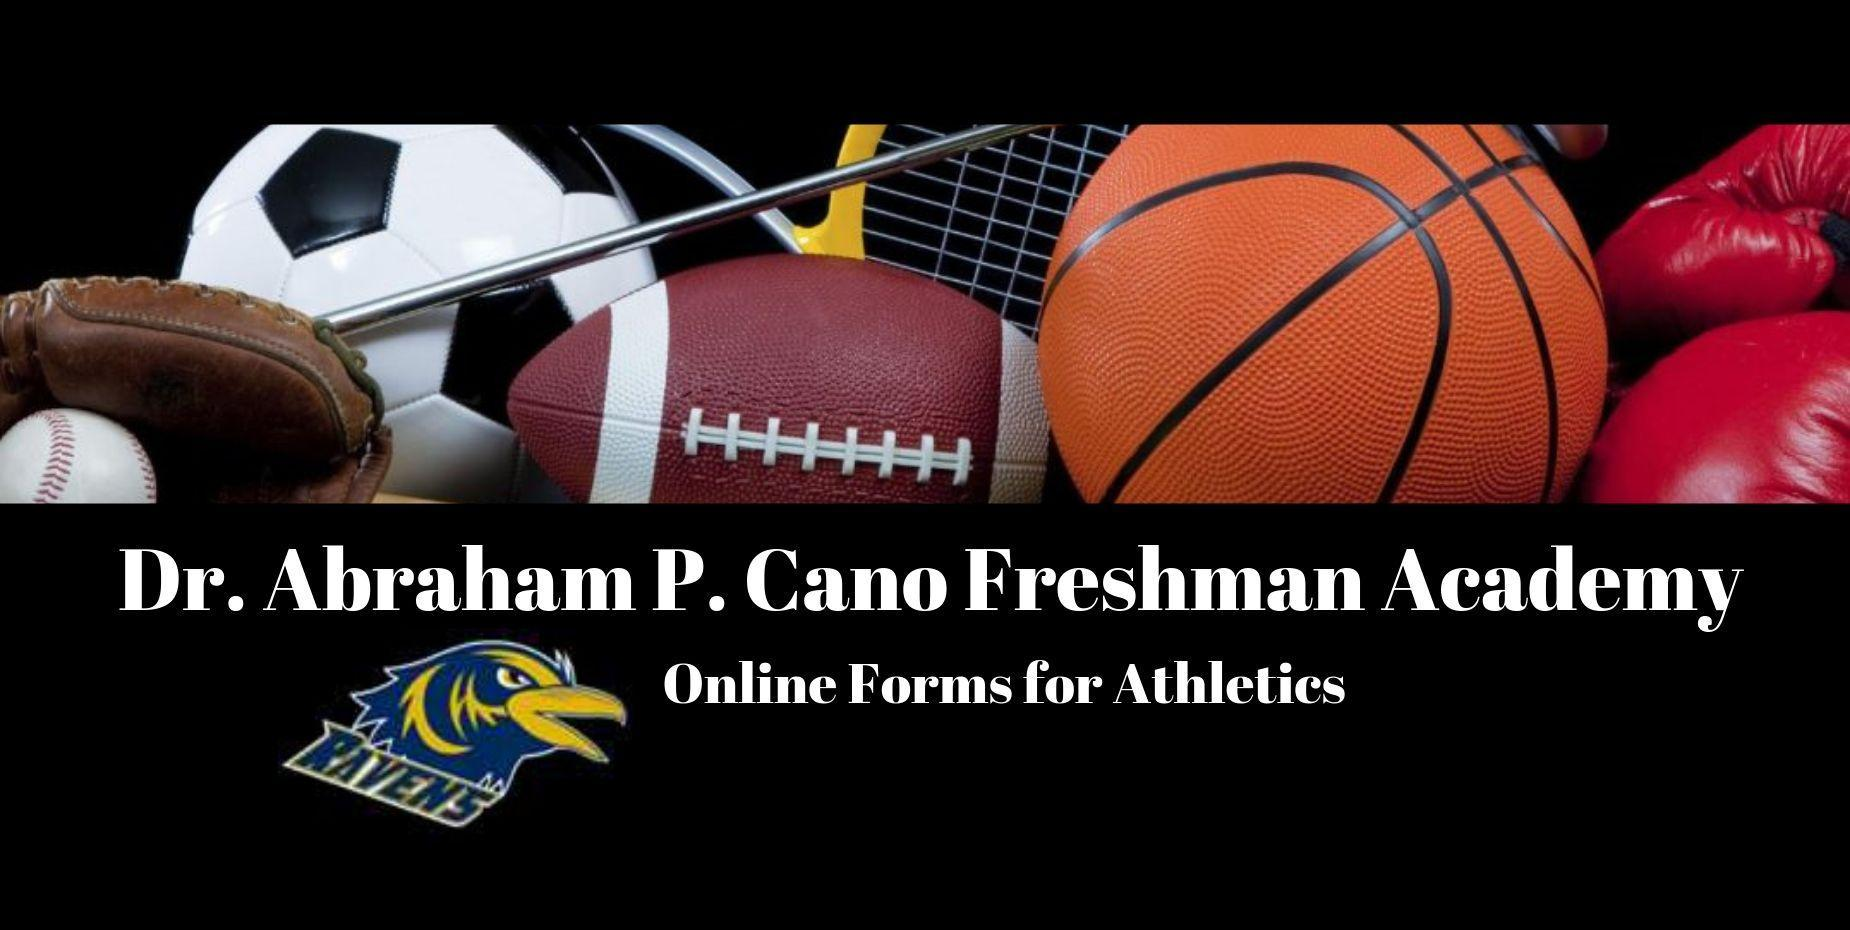 Online Forms for Athletics